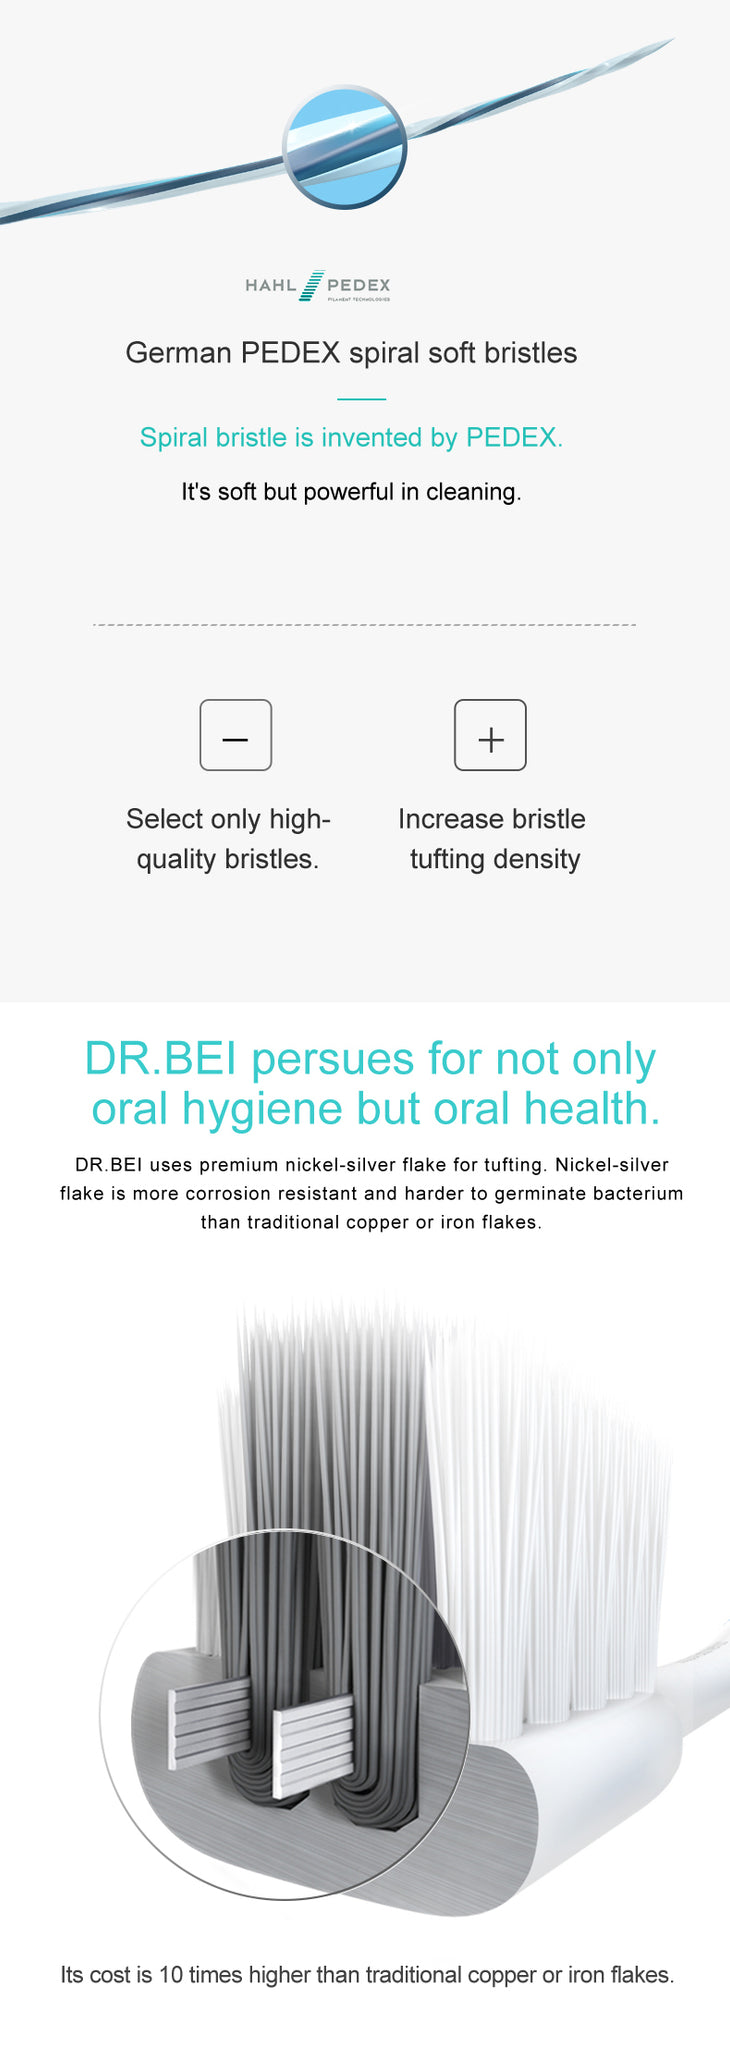 DR.BEI Bass Toothbrush, 4 Pieces (Xiaomi Version) Xiaomi Youpin DR.BEI Xiaomi Tooth Mi Bass Method Sandwish-bedded Better Brush Wire 4Colors Deep Cleaning Toothbrush